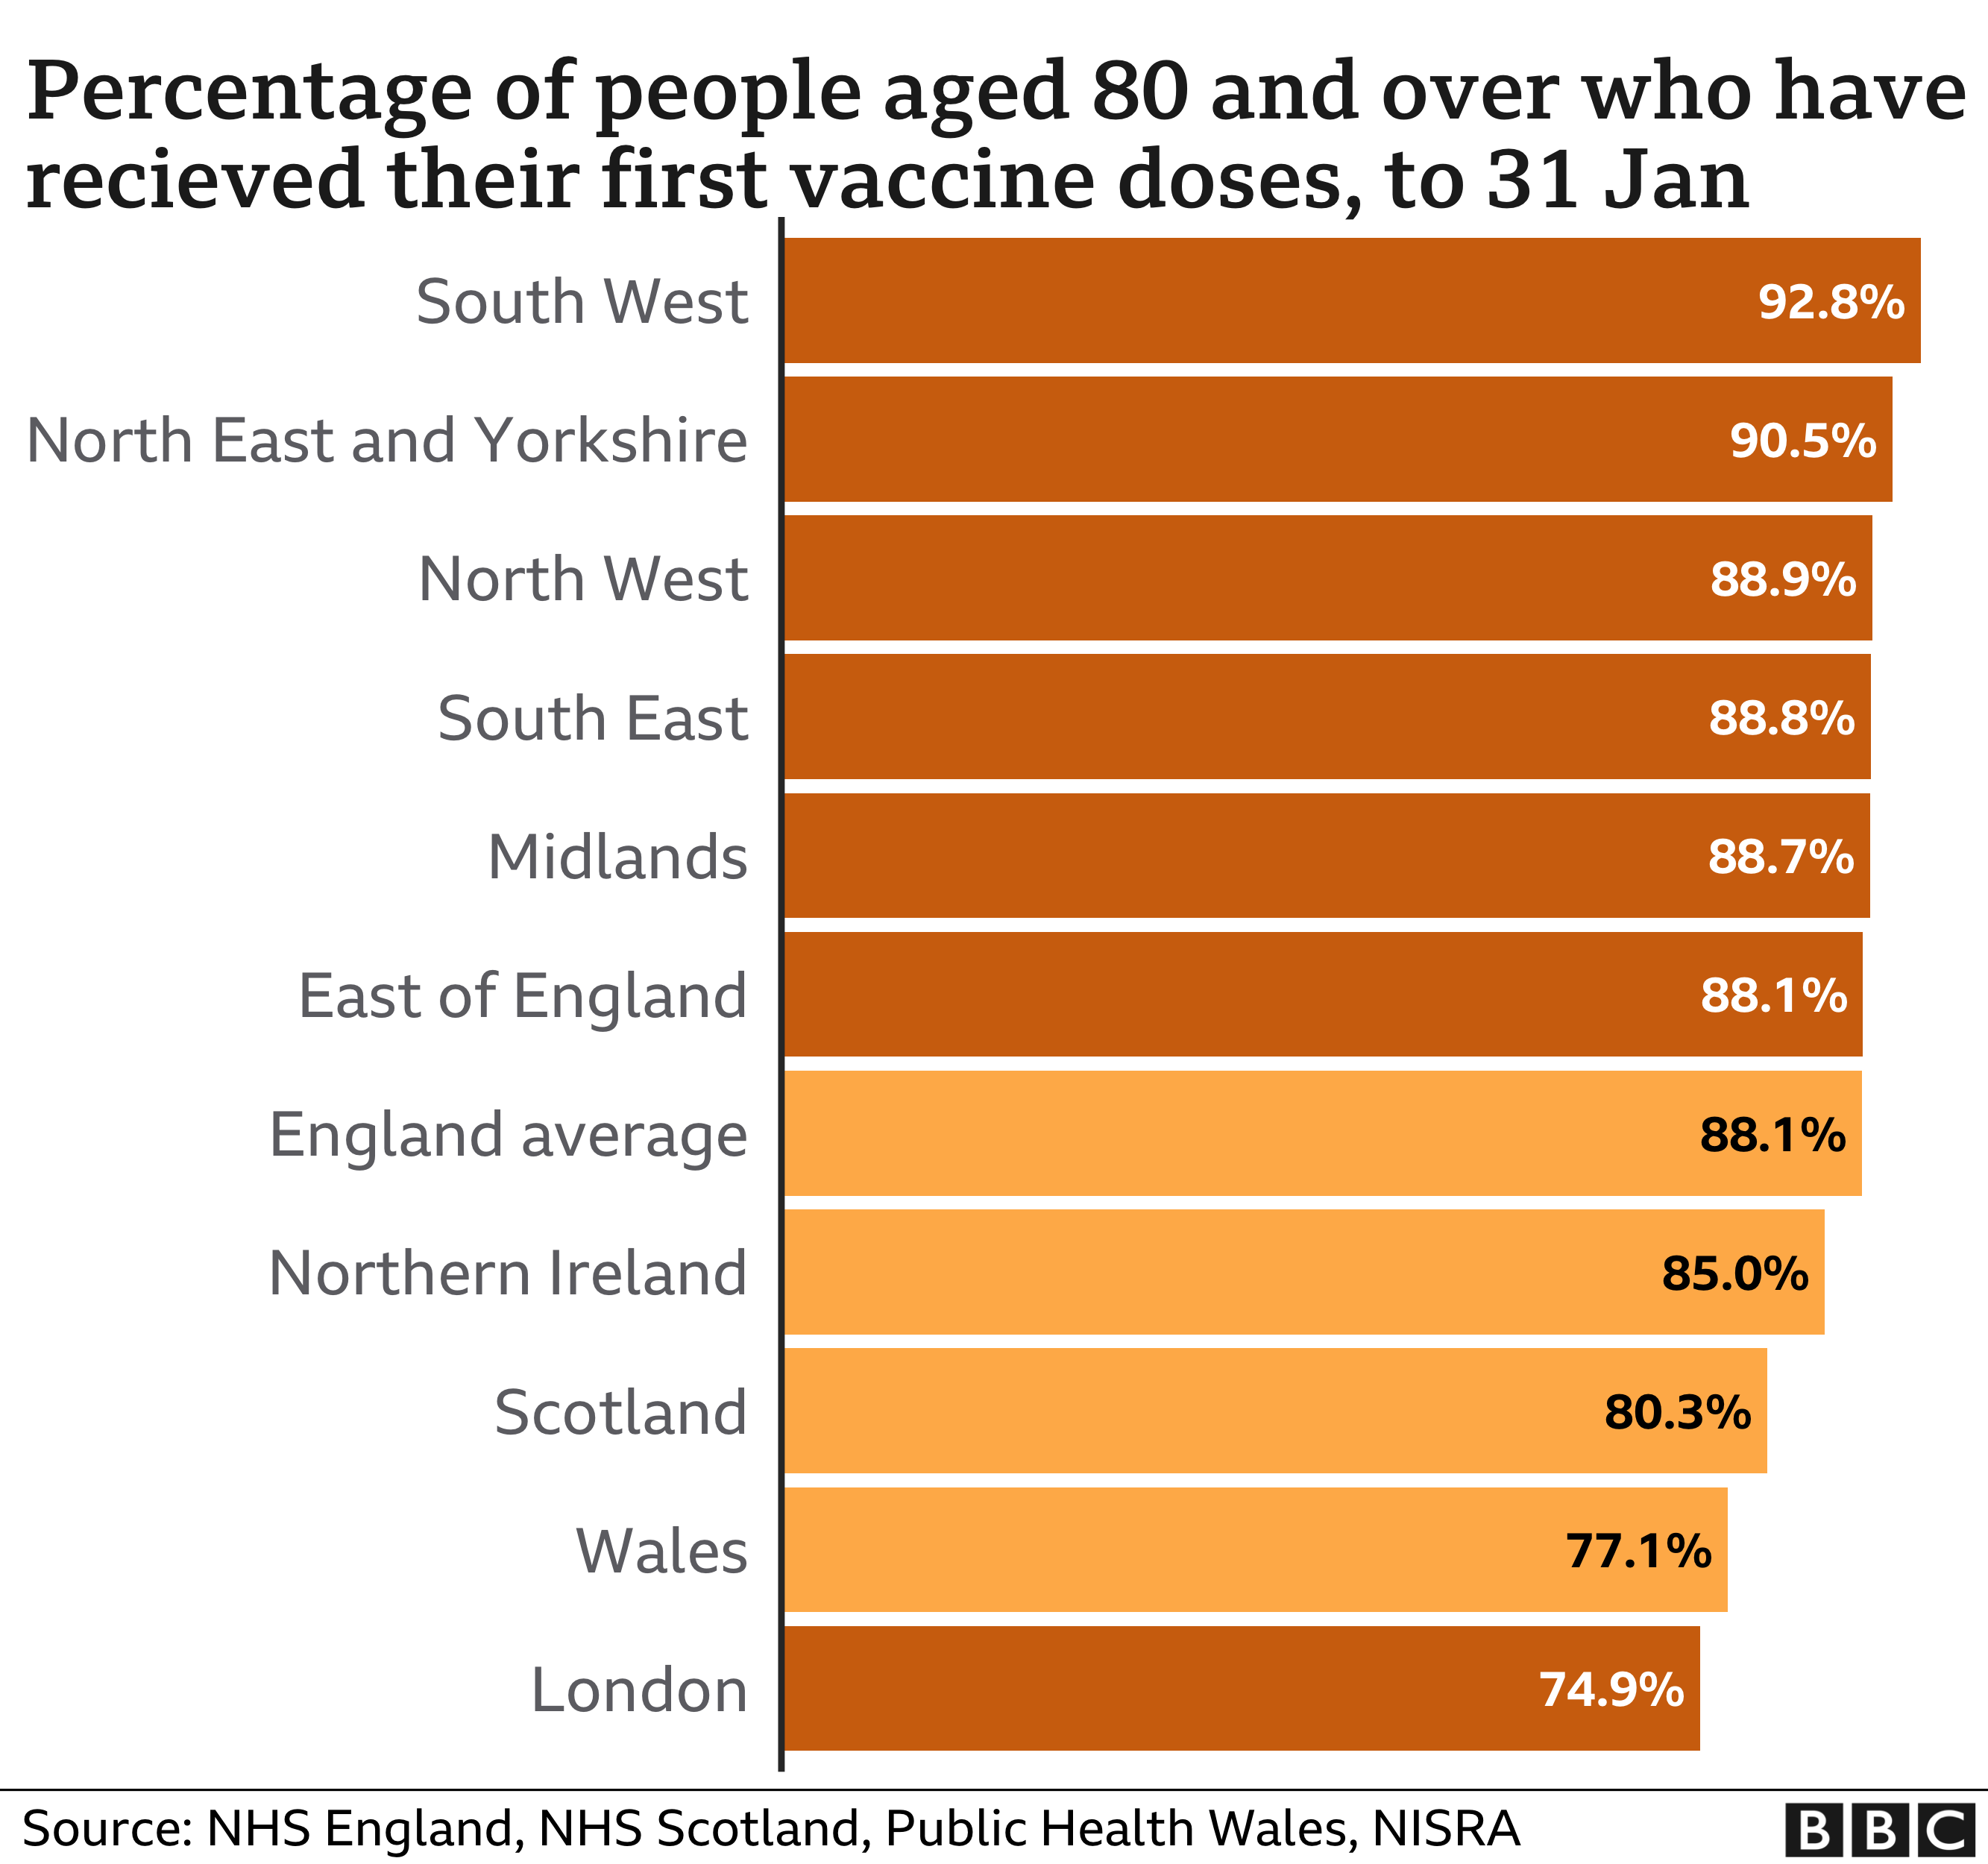 Percentage of over-80s vaccinated across the UK